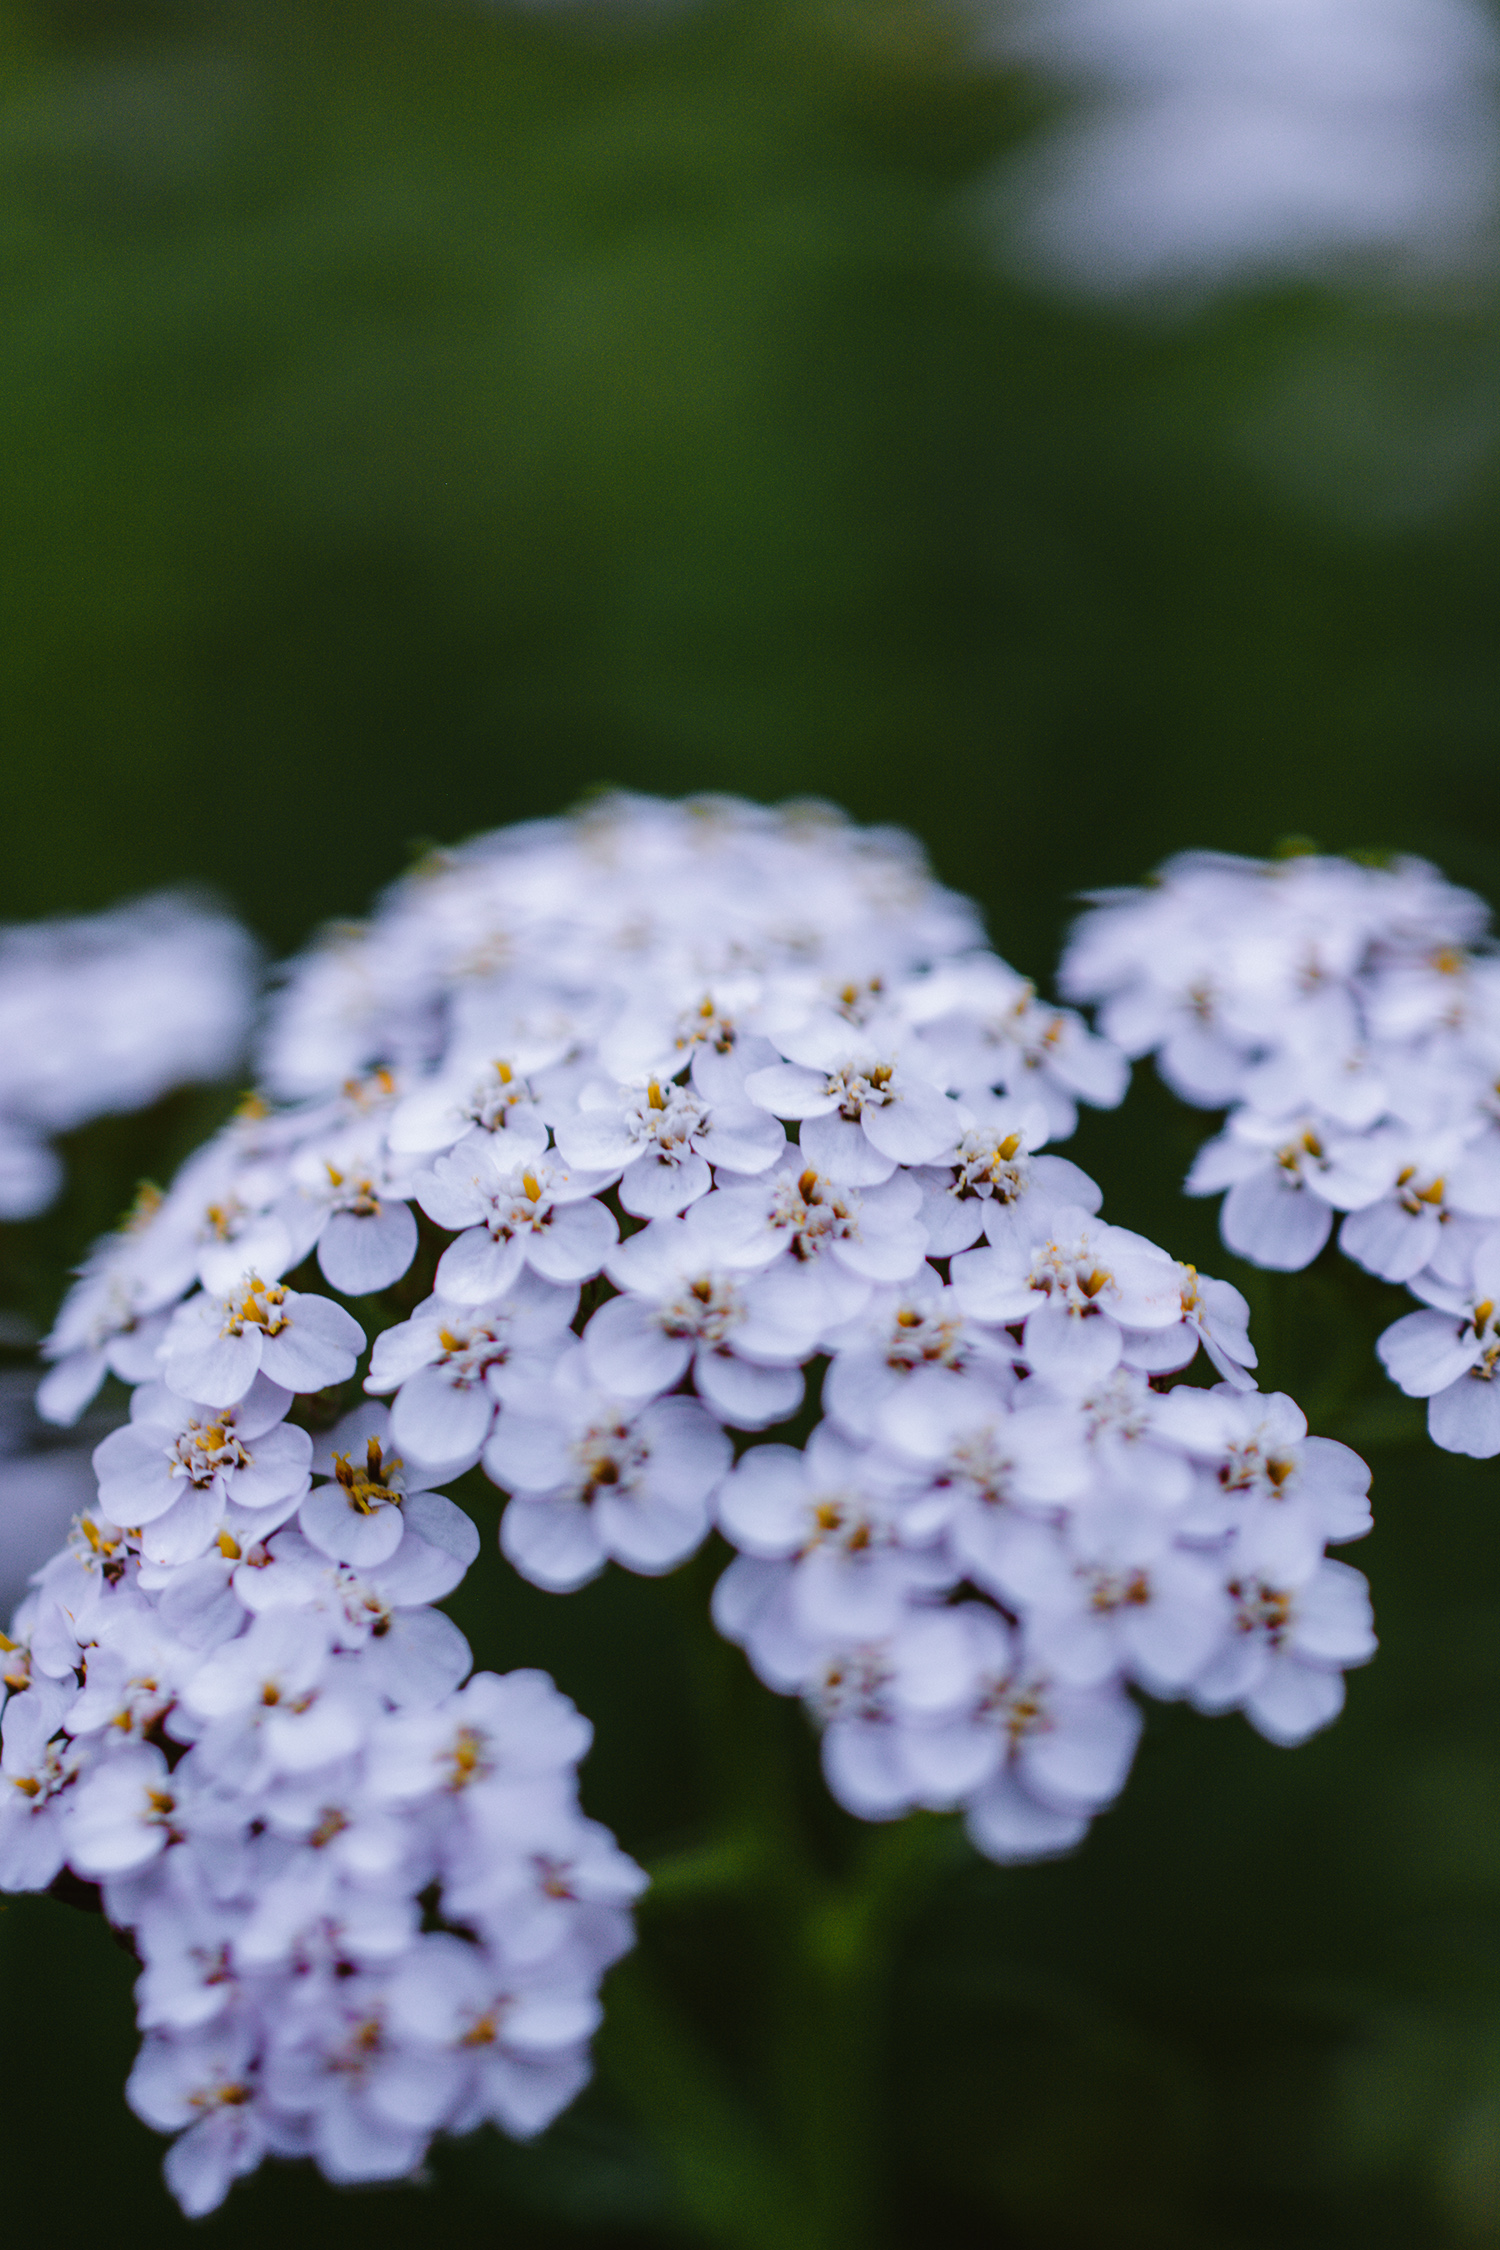 Yarrow is a common spring plant with medicinal properties.